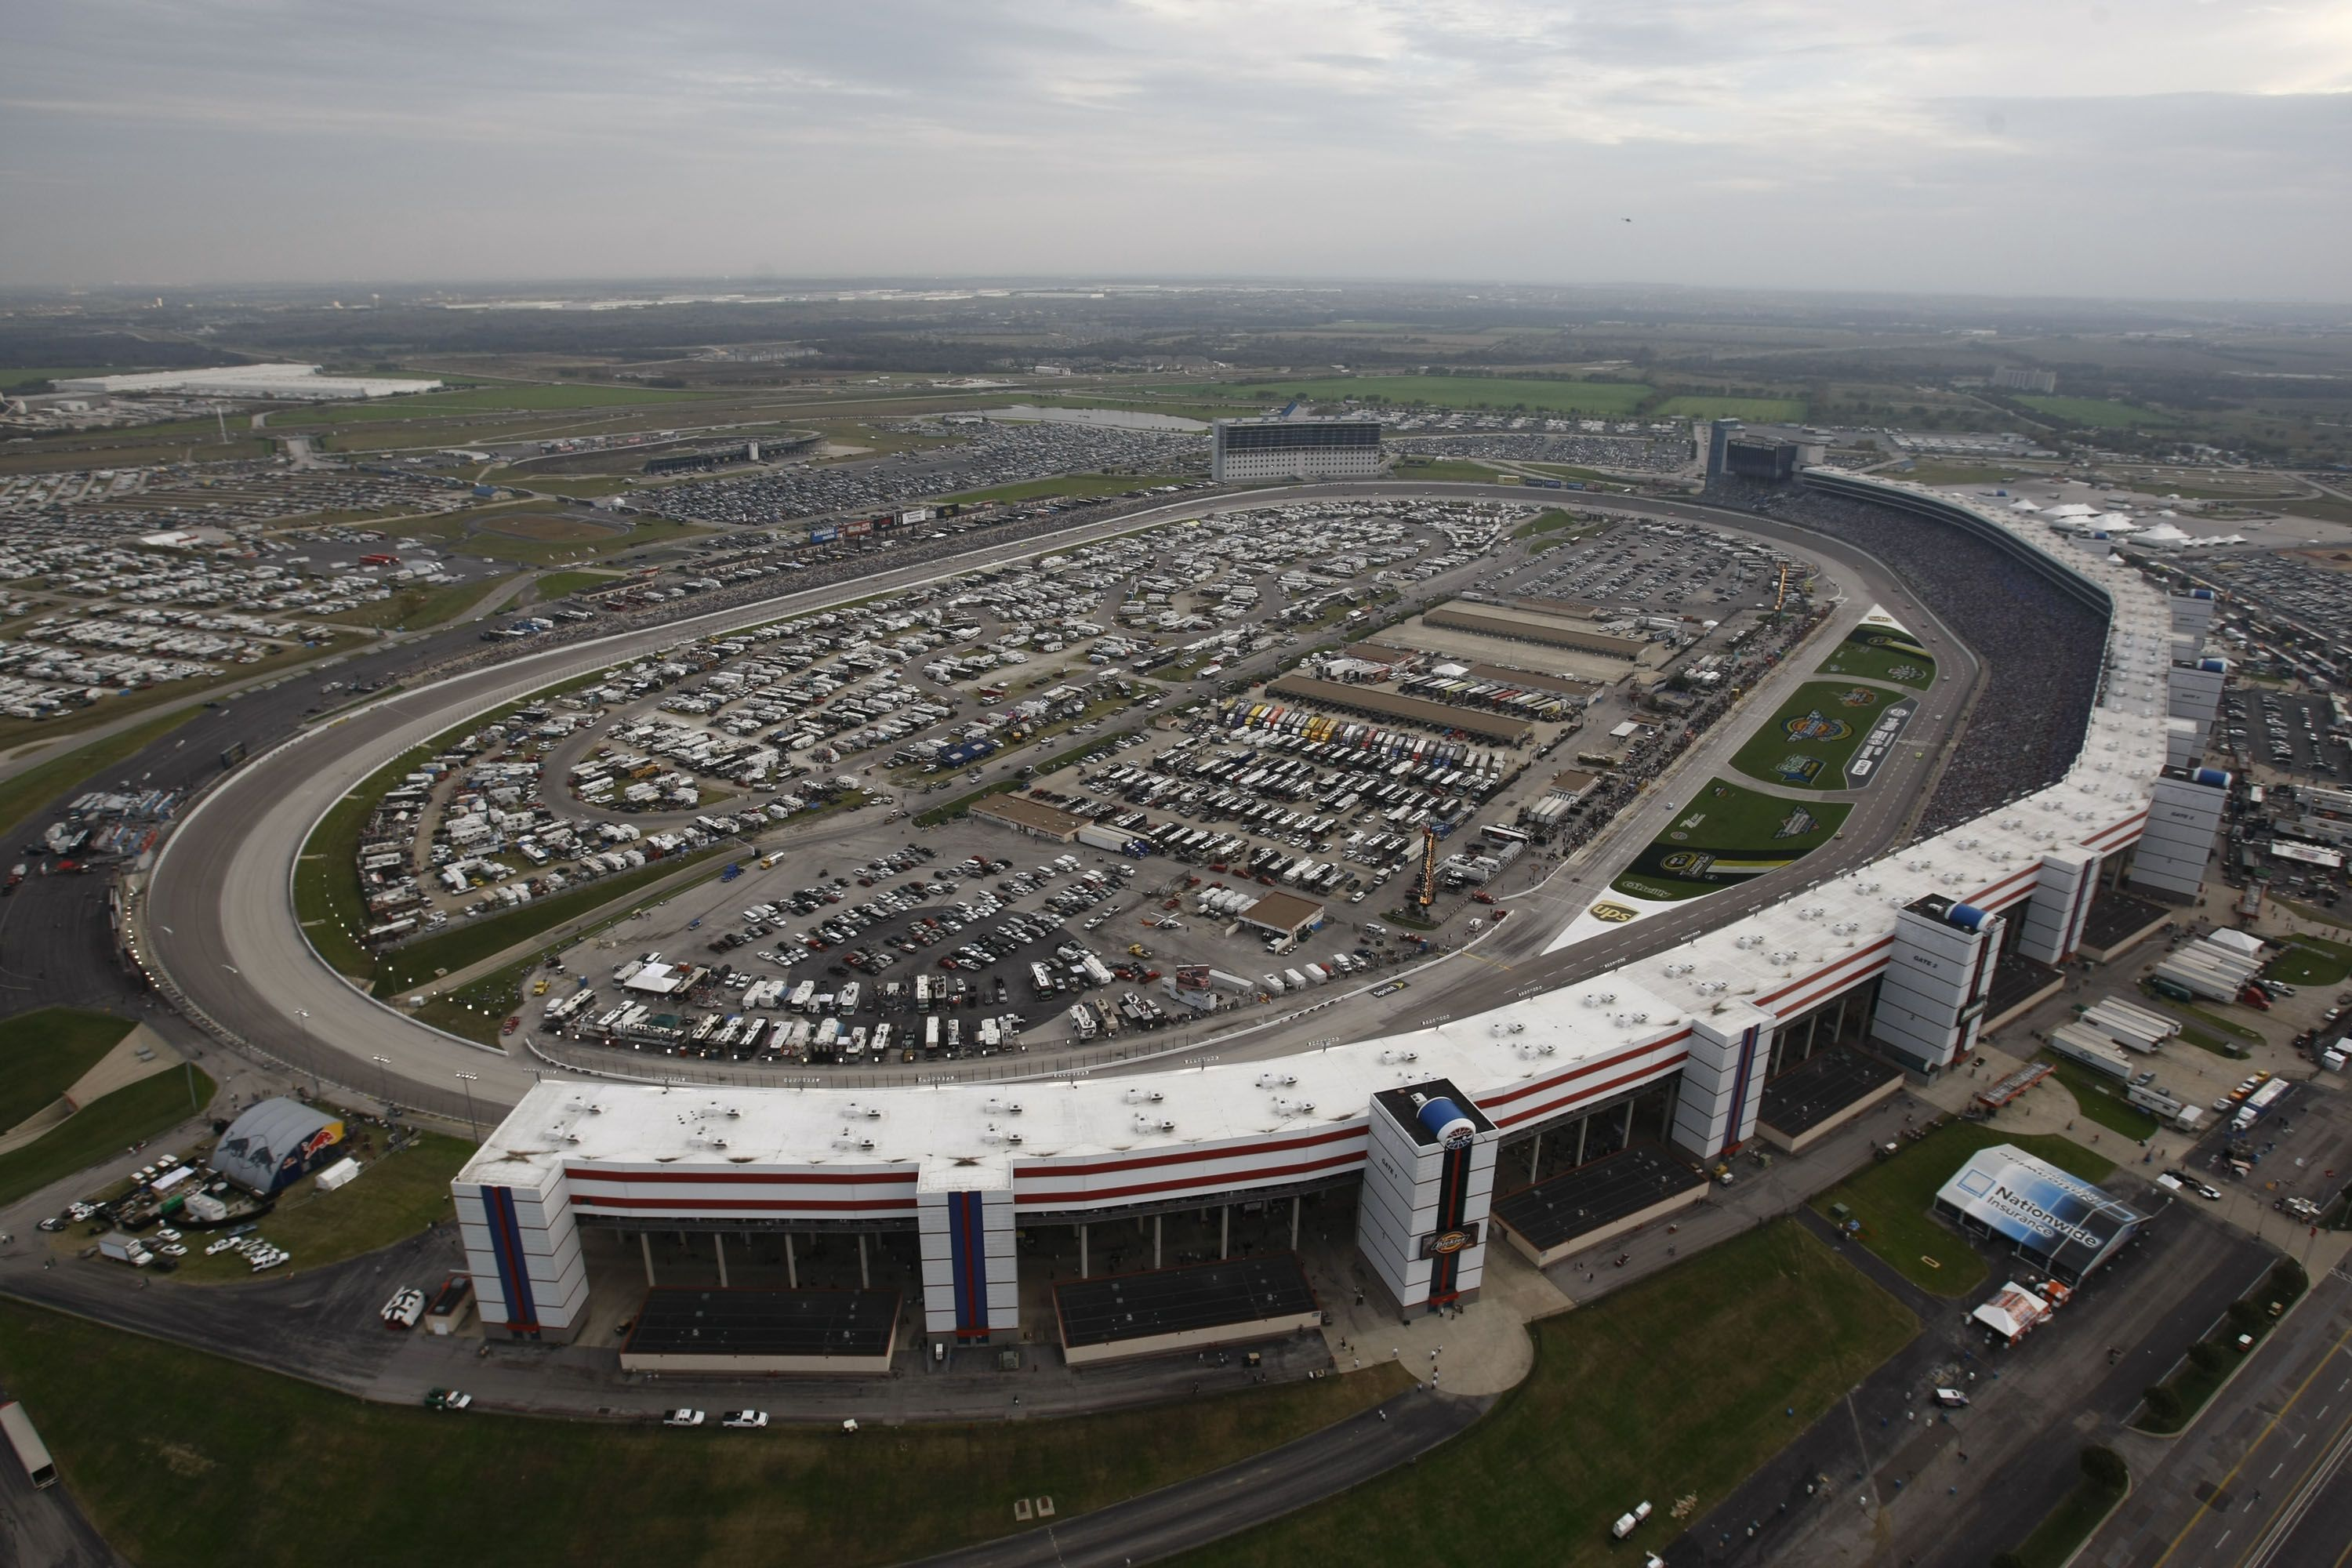 Aerial View of TEXAS MOTOR SPEEDWAY The most massive stadium I ve ever seen Seating over is one of the largest stadiums in the country